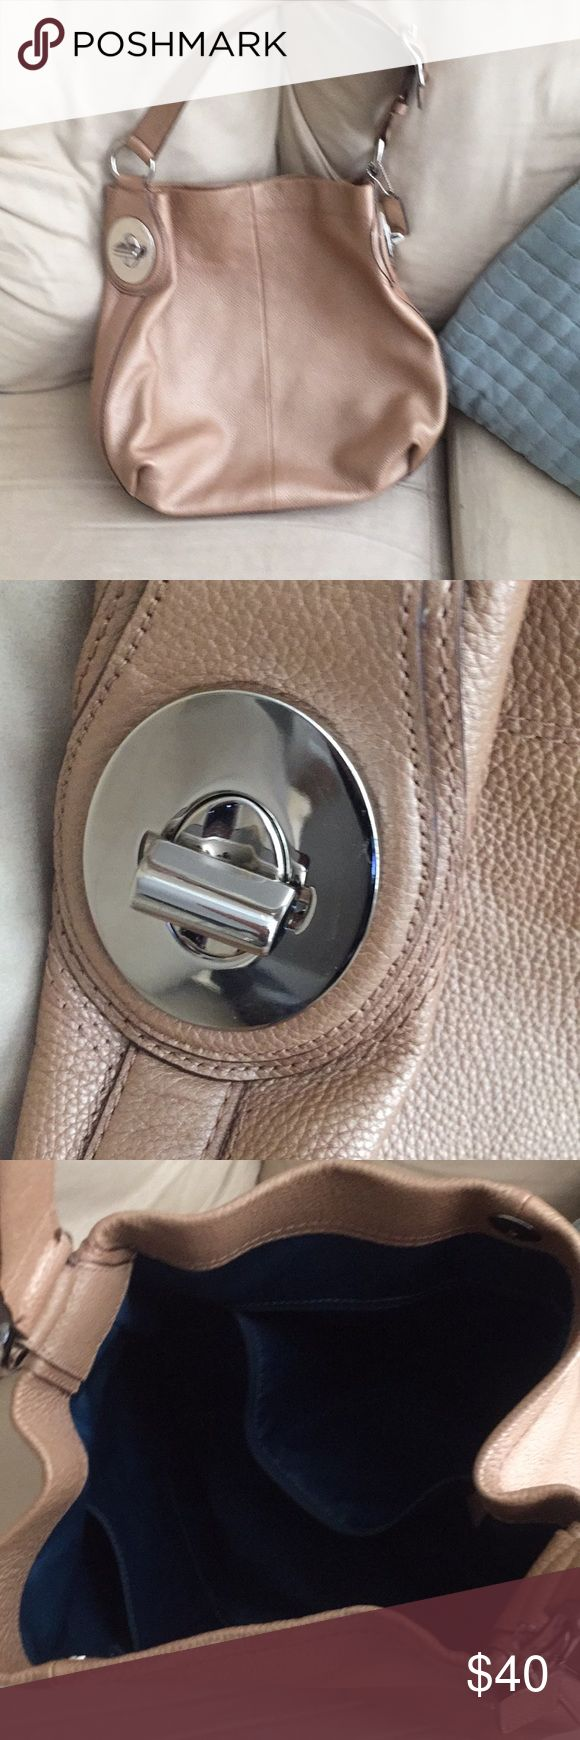 Goldfish Taupe Coach Purse Cute Coach purse with silver hardware. Super cute hobo bag. Med/large size. Coach Bags Hobos